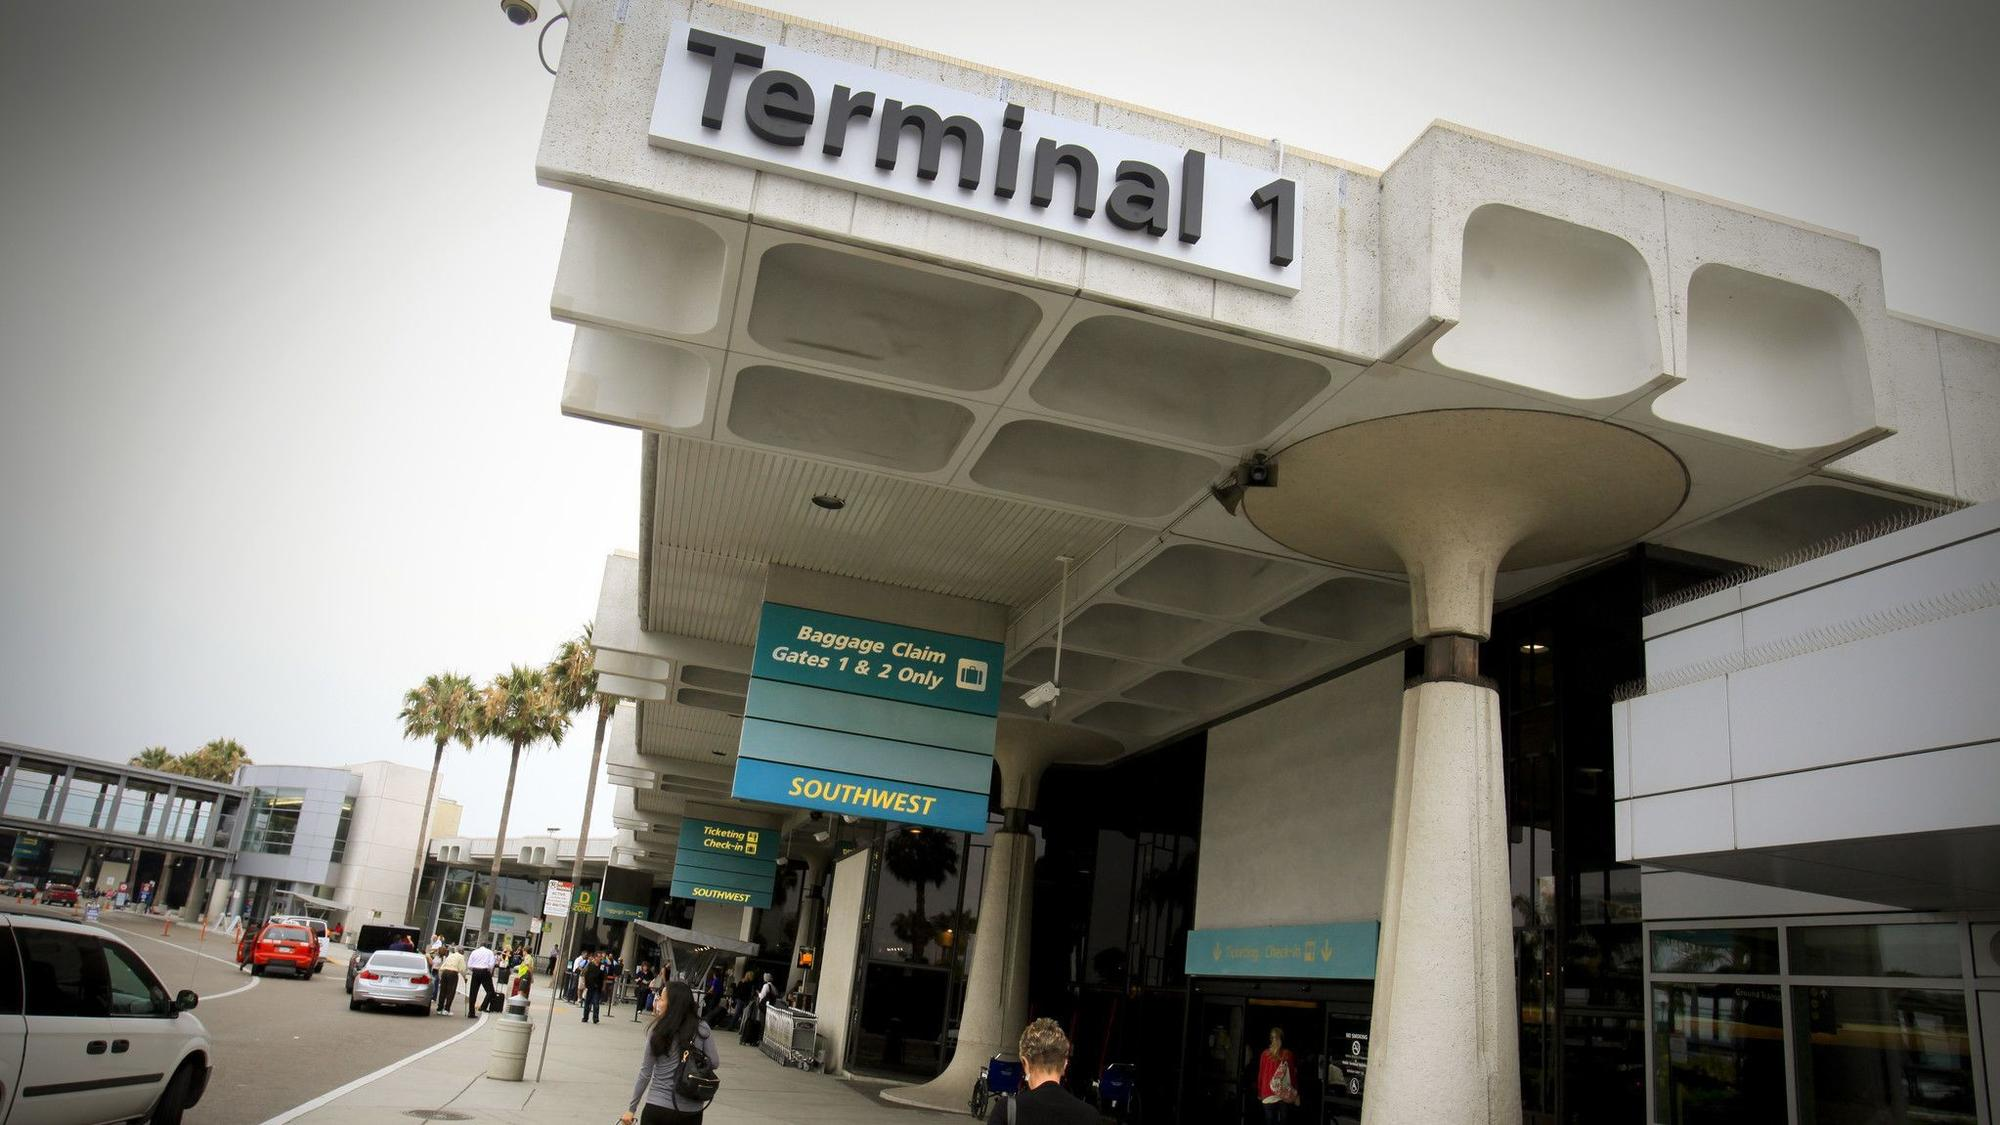 Passengers head for Terminal 1 at San Diego International Airport Lindbergh Field.